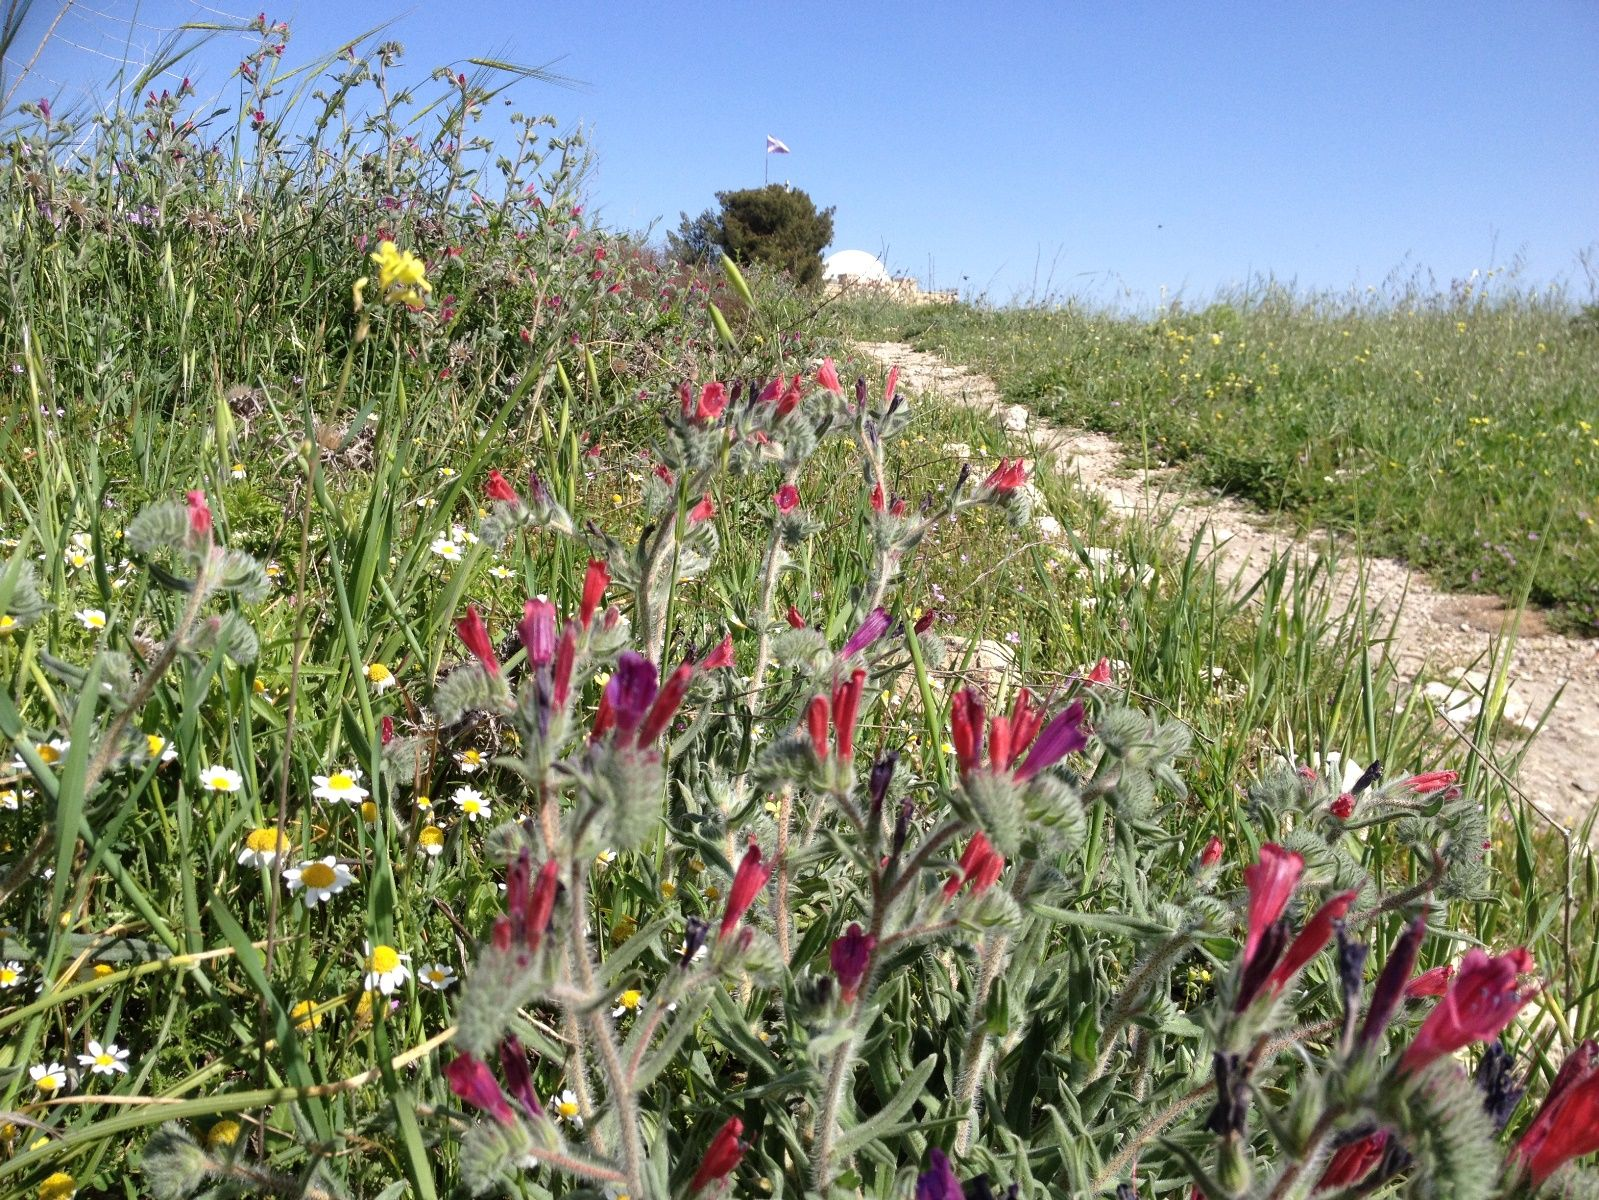 Flowers on Bible Hill, photographed by Moriah Gilbert.